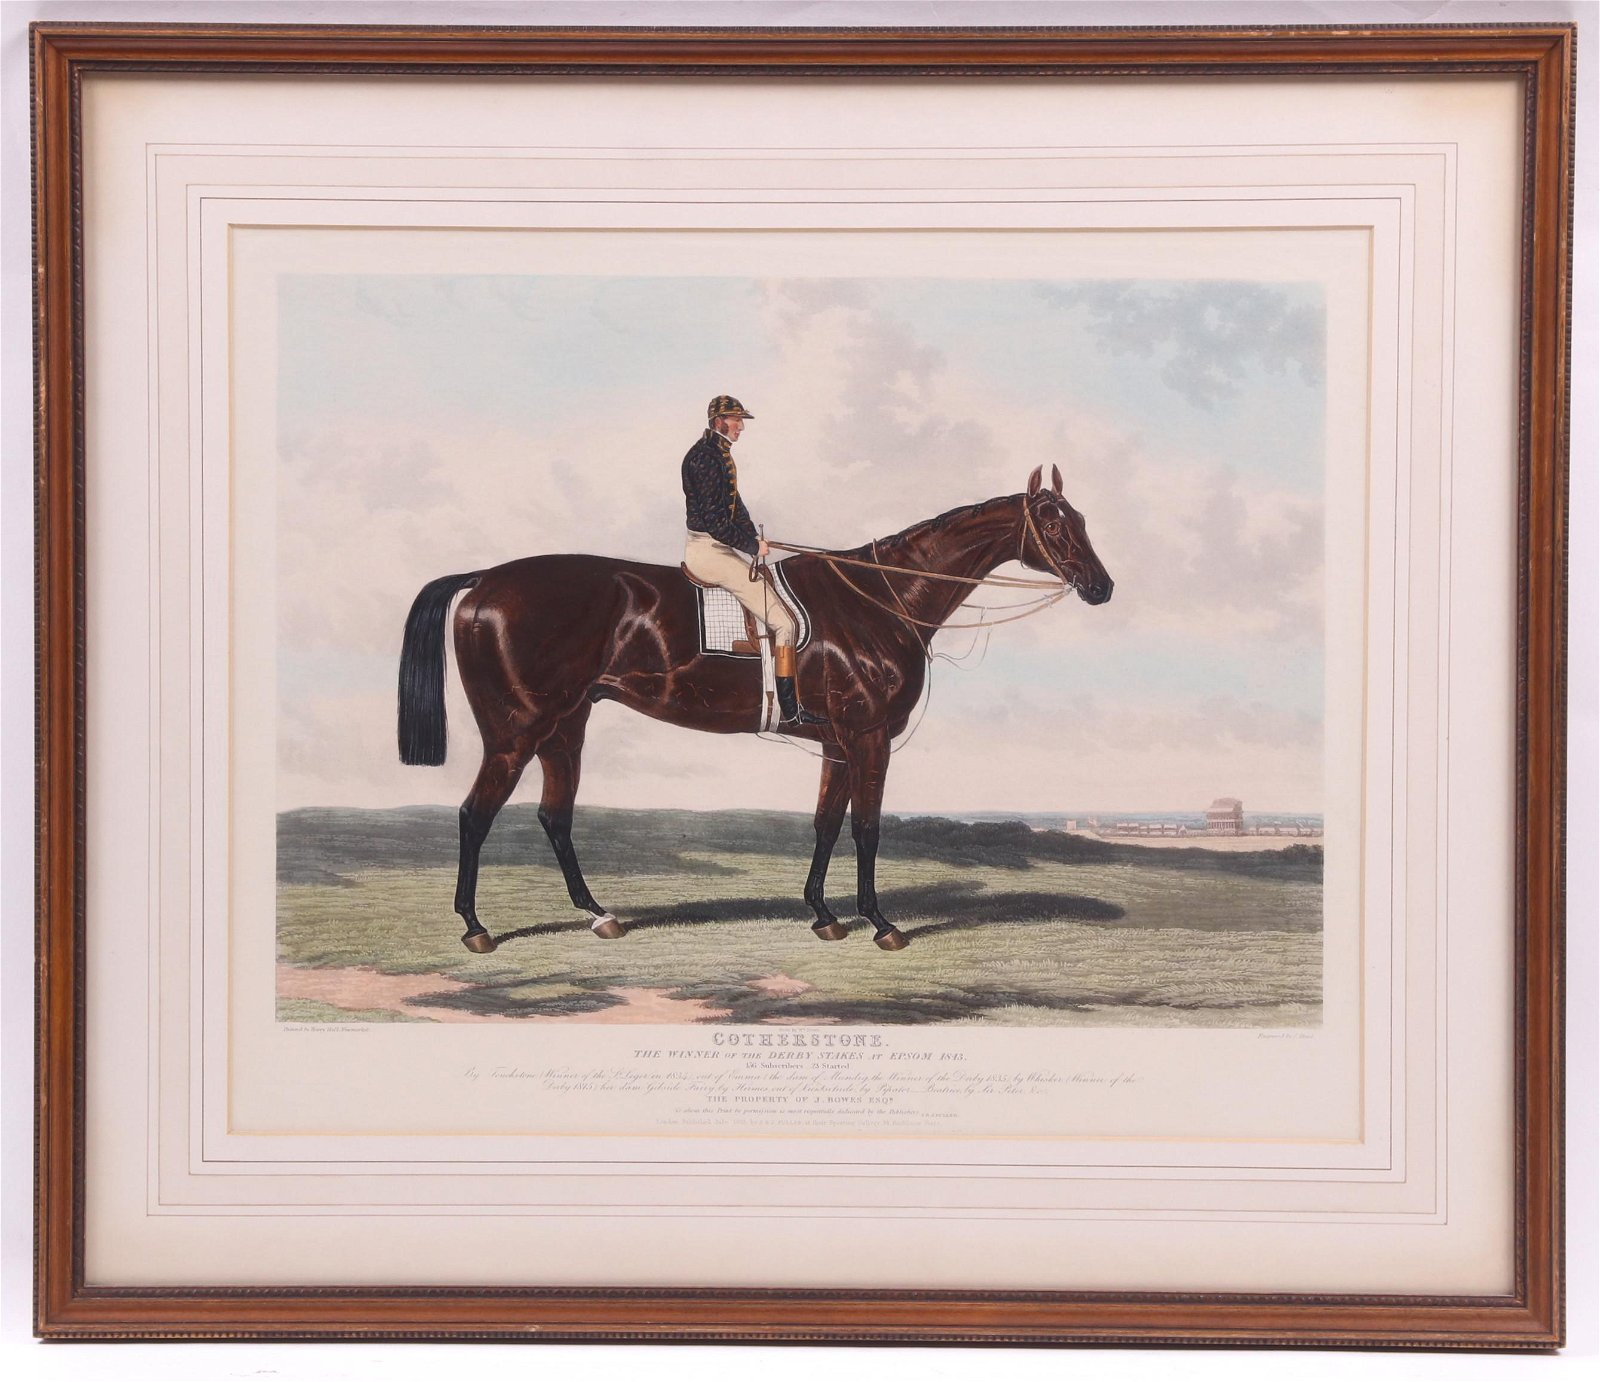 English Racing Horse Engraving After Harry Hall